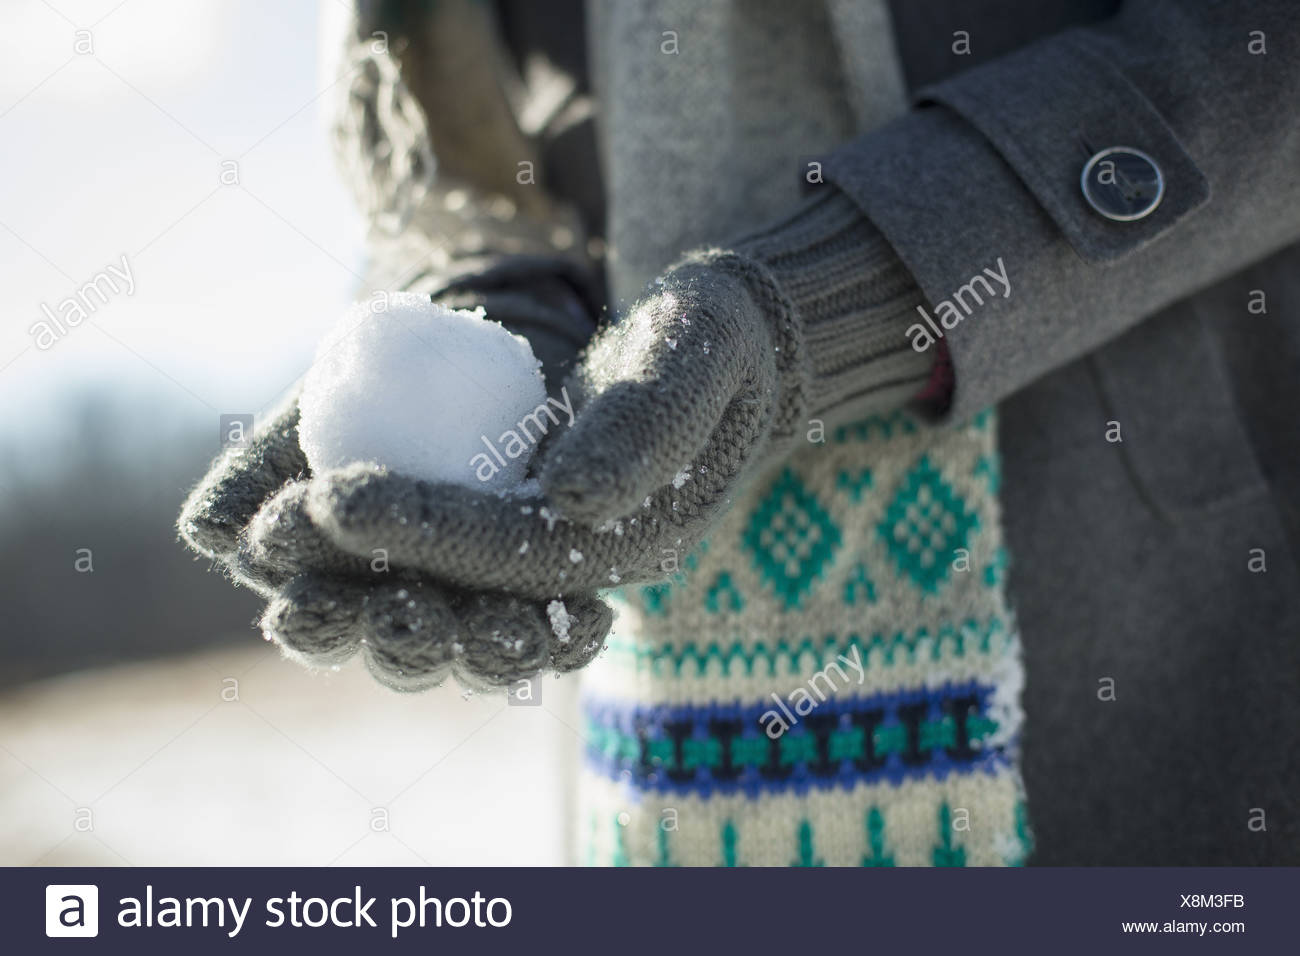 A young woman holding a small snowball in her gloved hands. Stock Photo